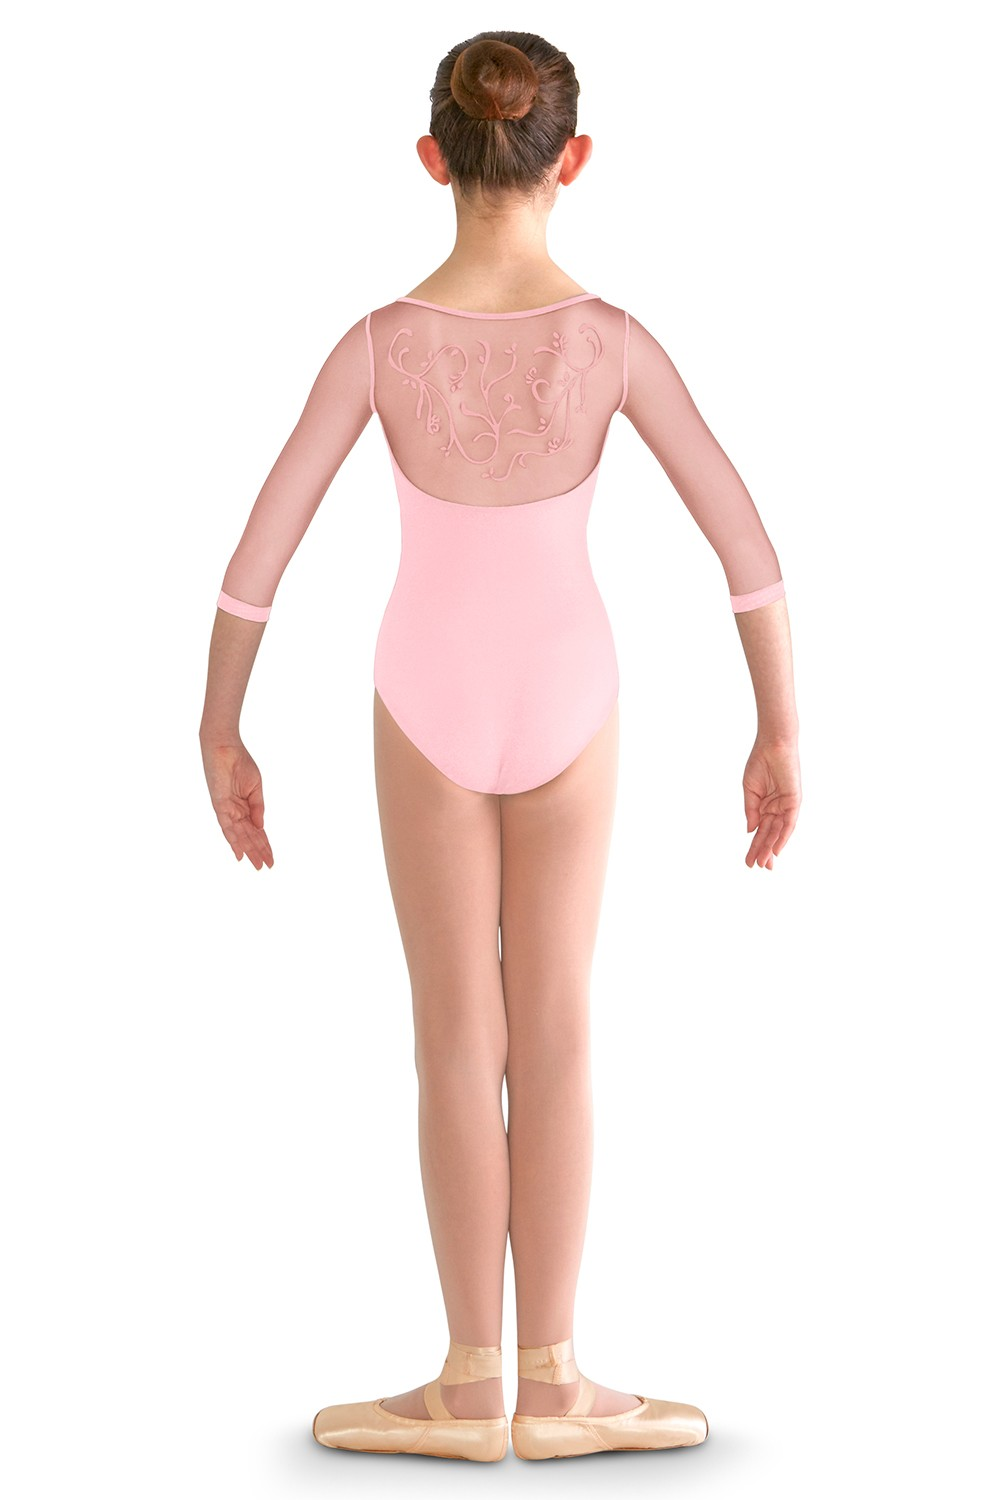 Duron Children's Dance Leotards